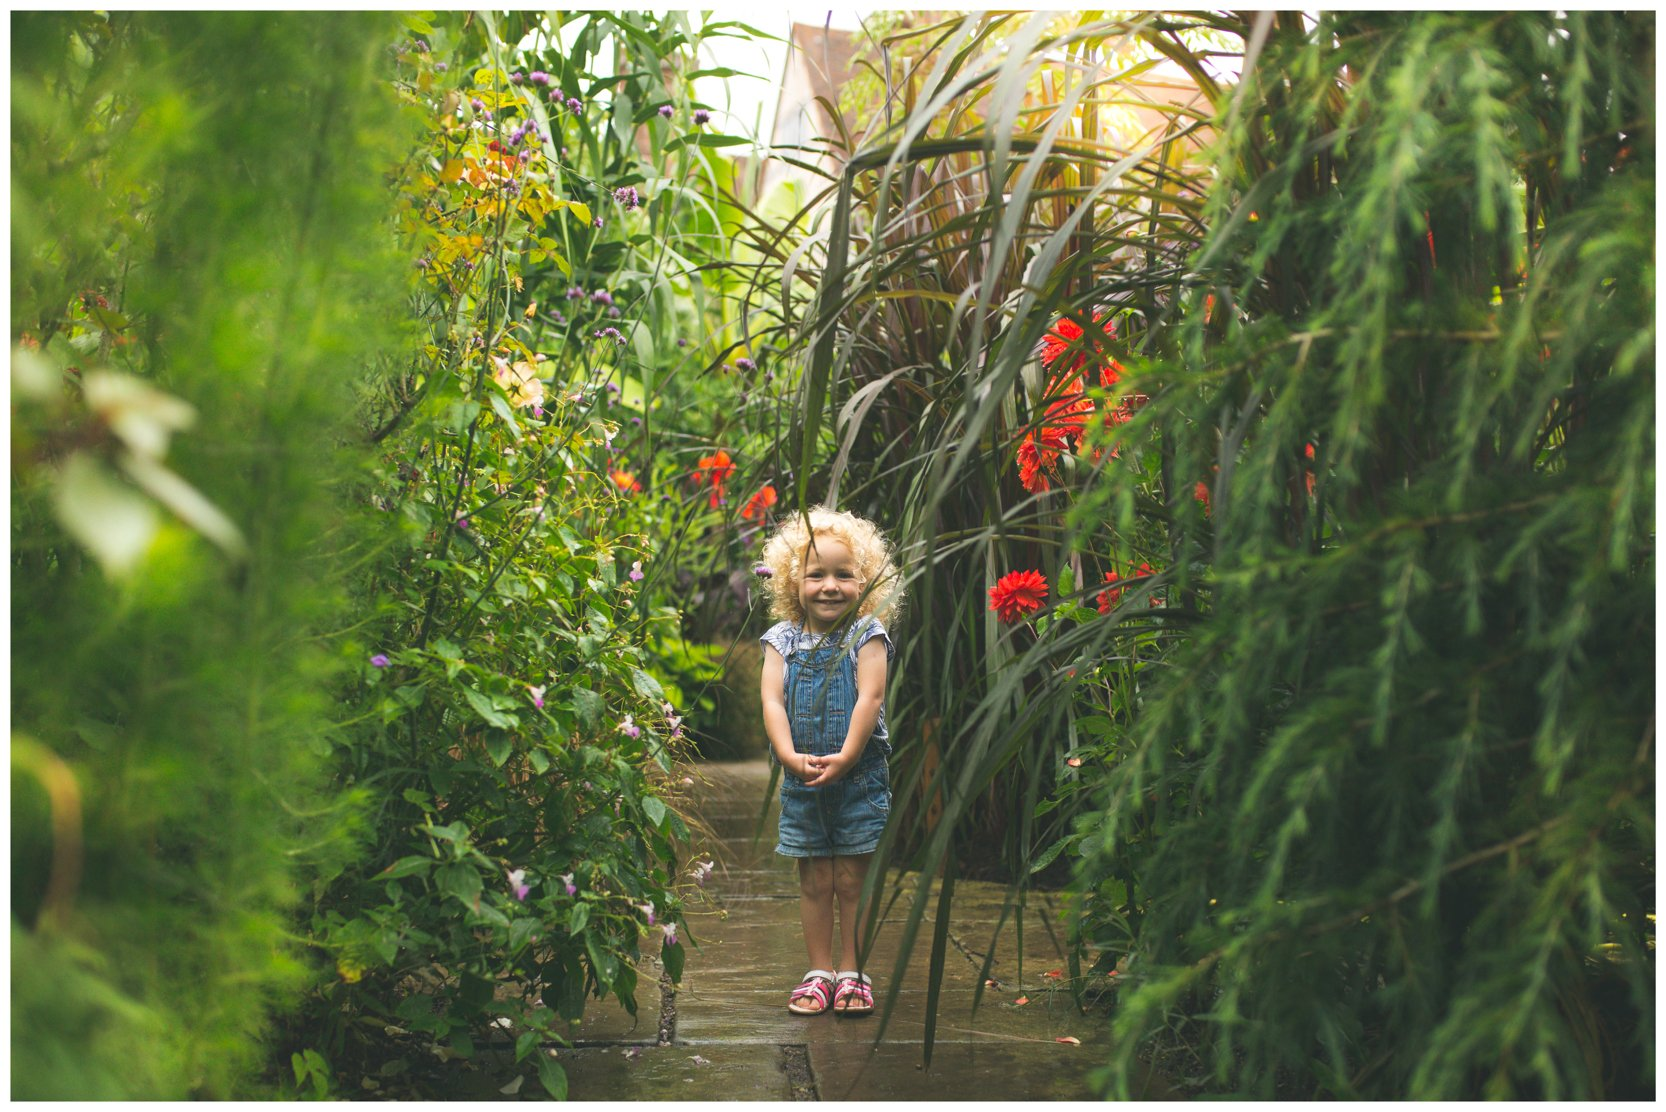 A child standing in the Exotic garden at Dixter